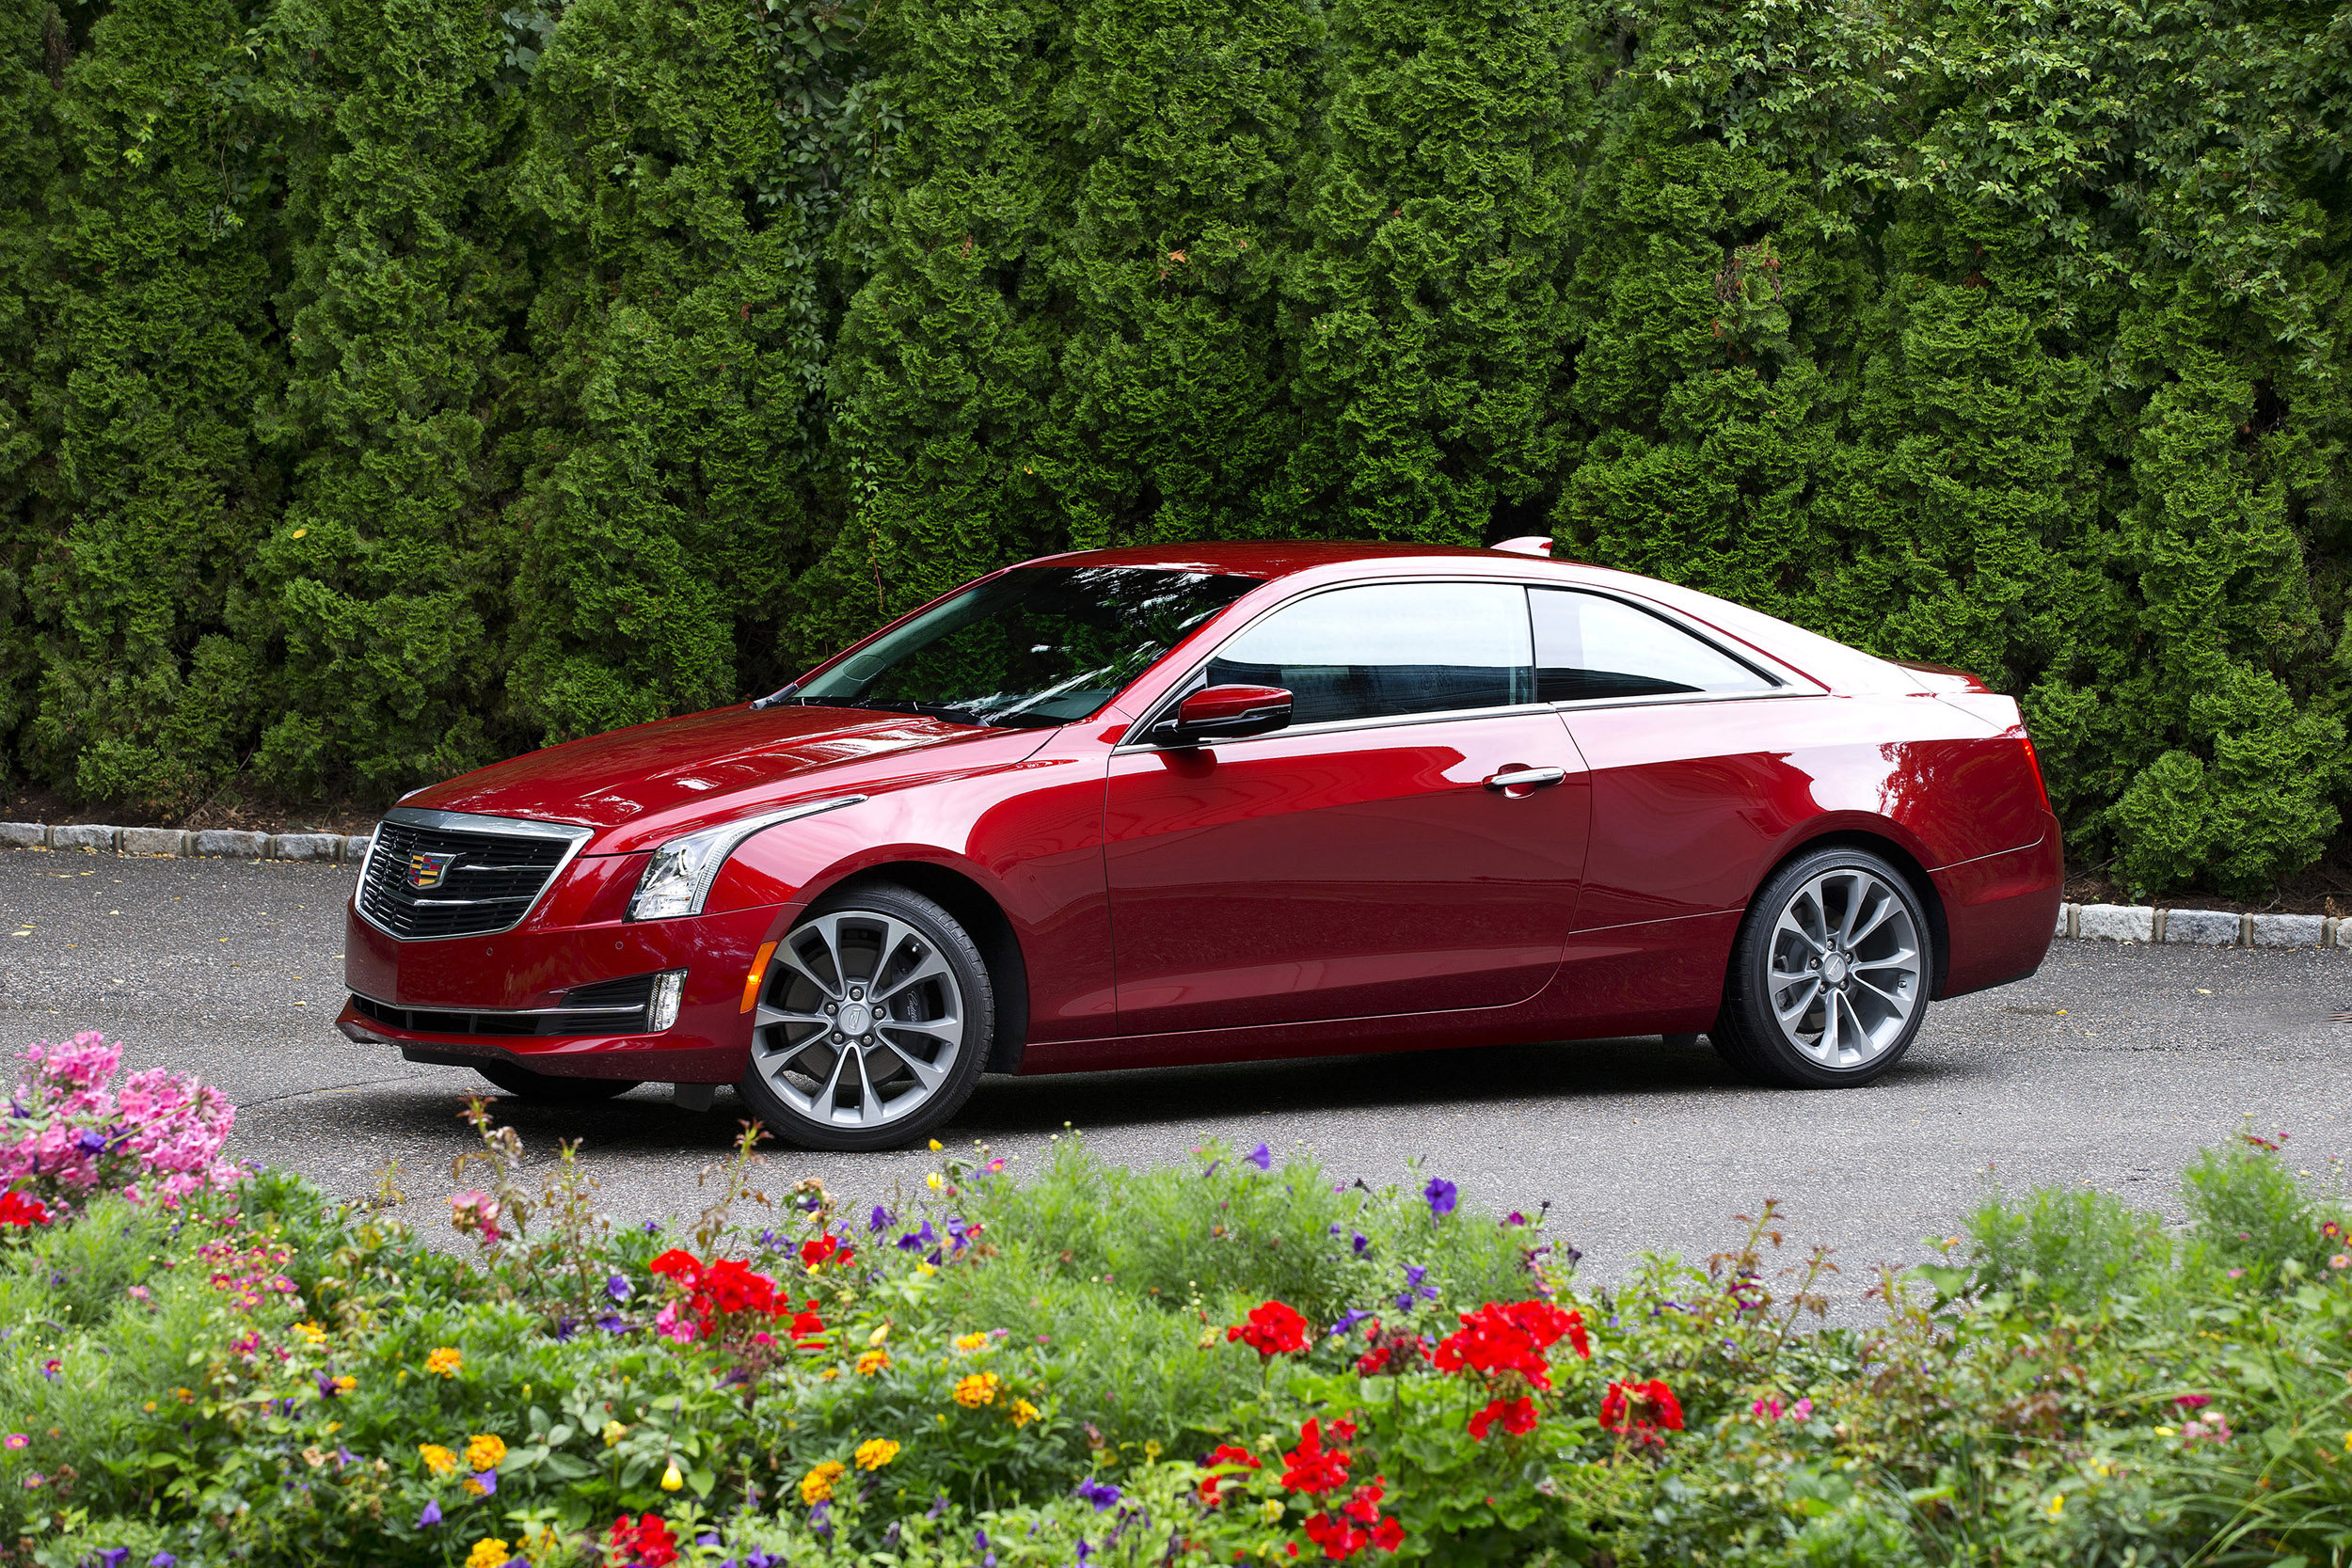 Cadillac ATS COUPE 2 0T Luxury AWD 2017 International Price & Overview